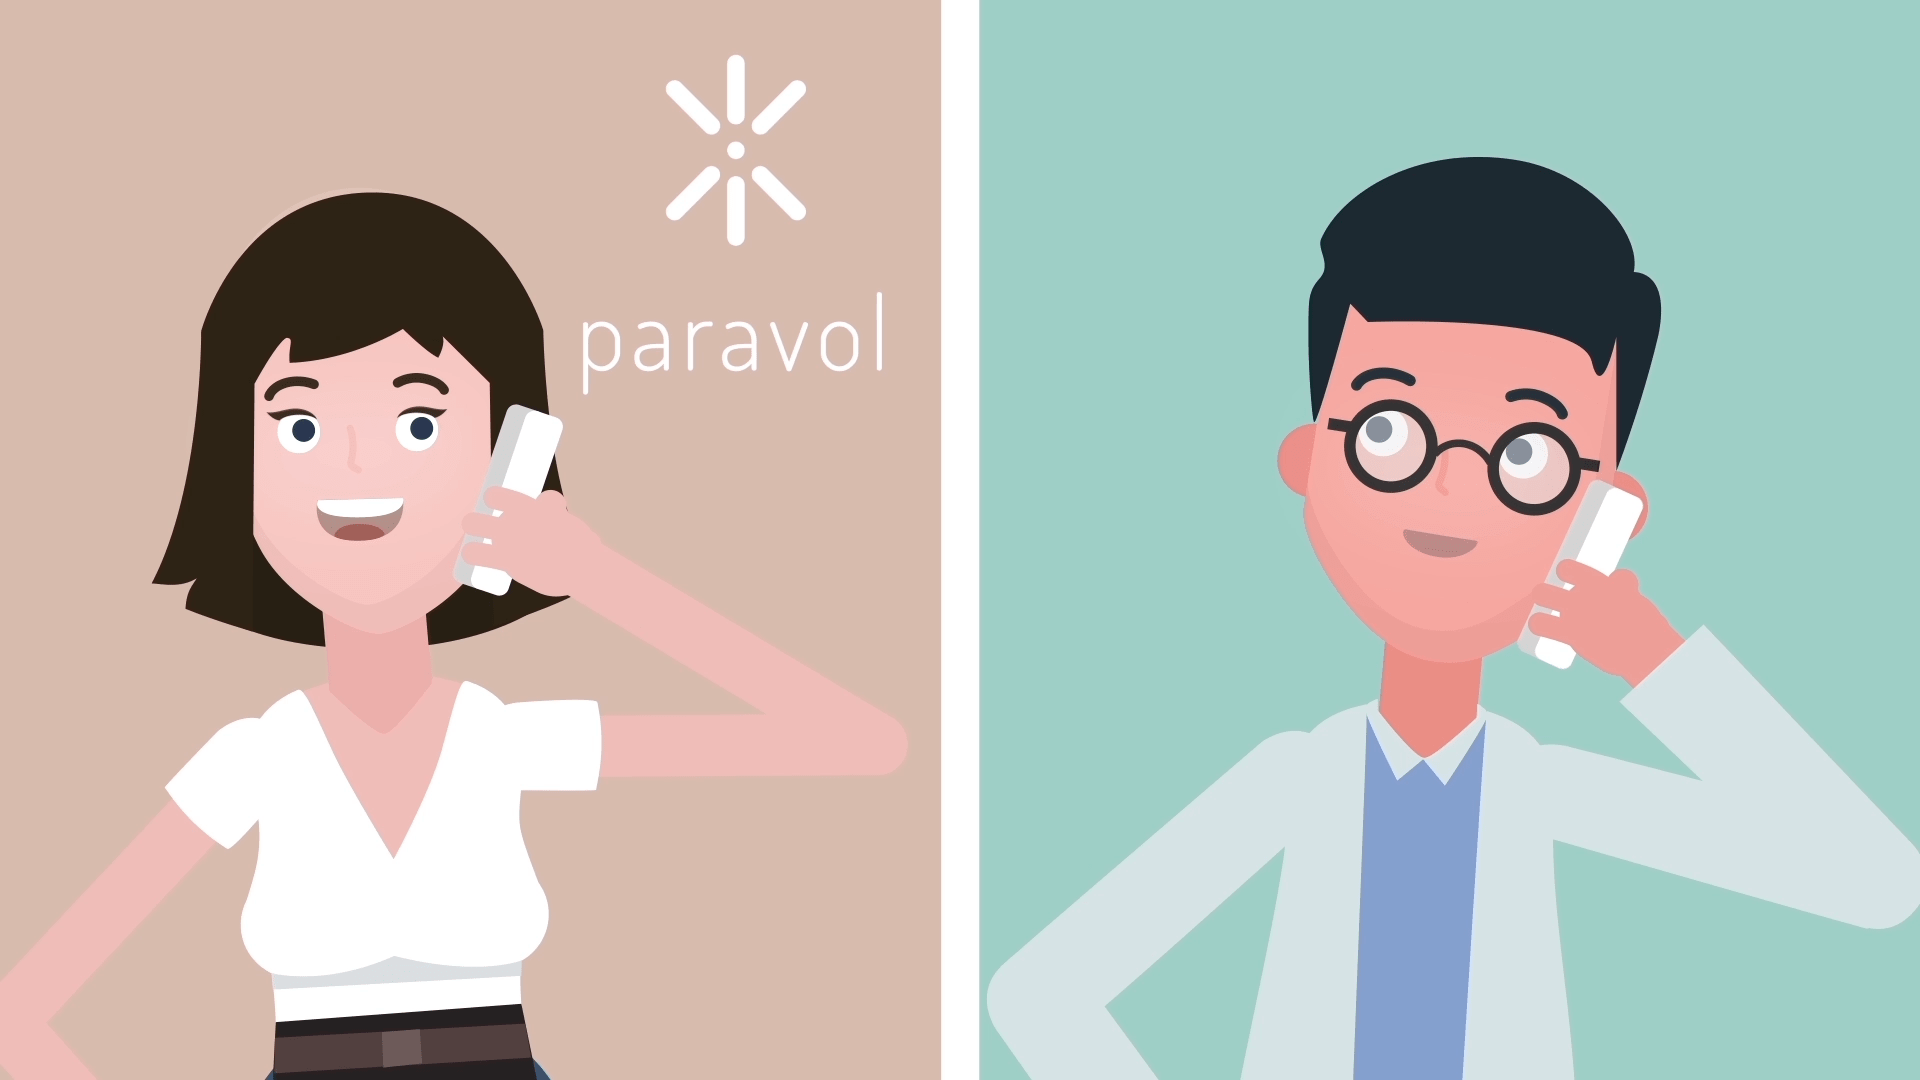 Paravol-Motion-design-5-min Paravol | Motion Design